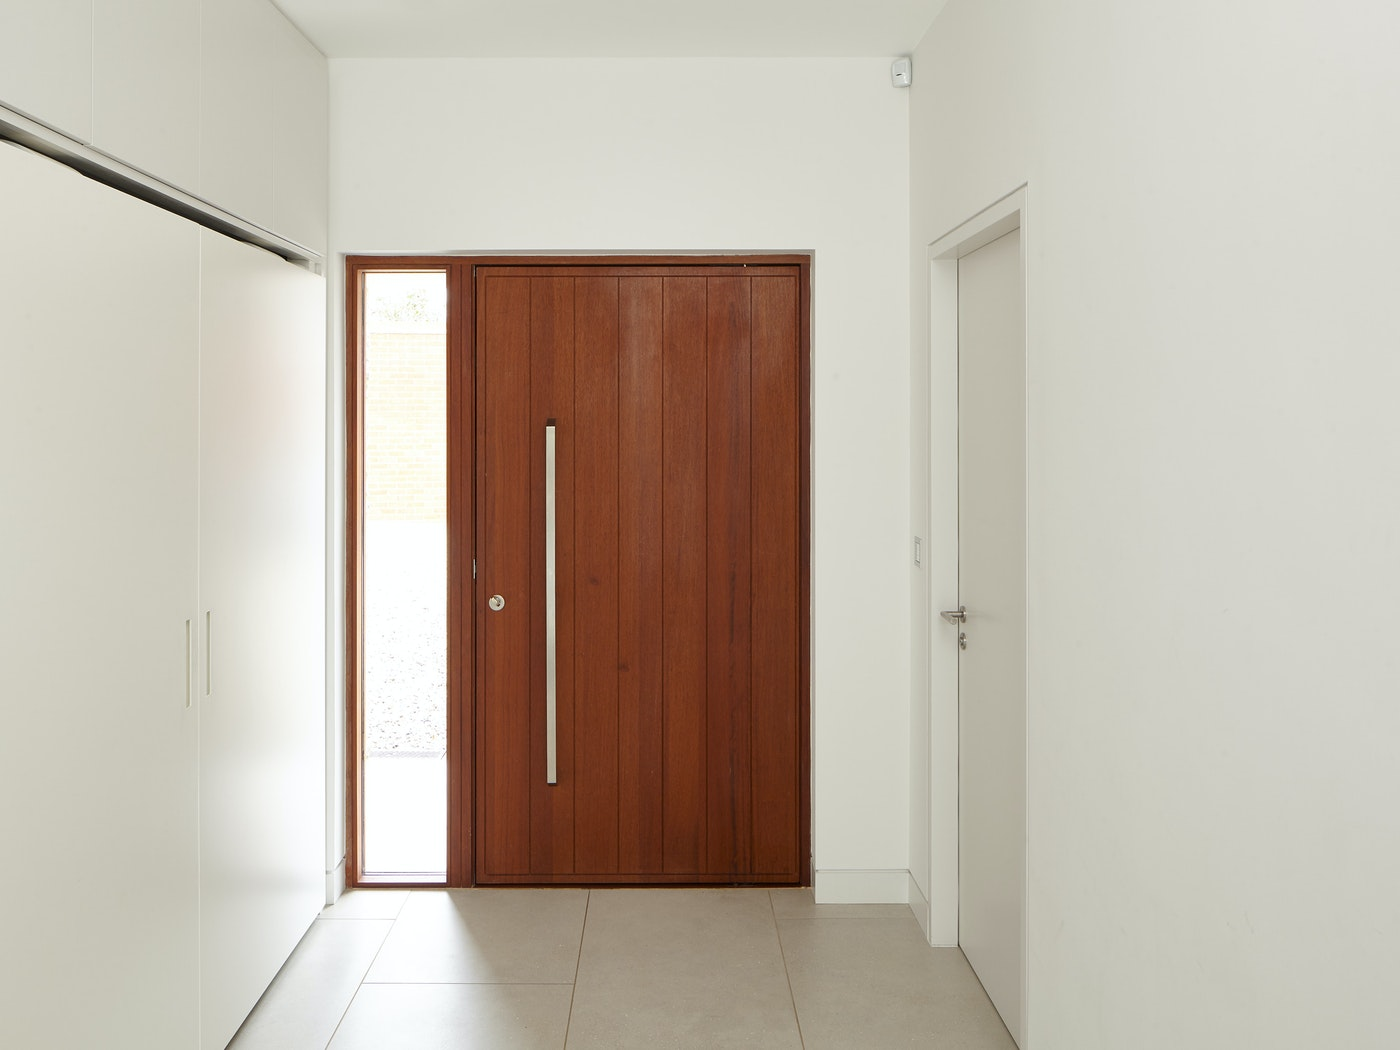 The iroko wood stands out against the all-white interior